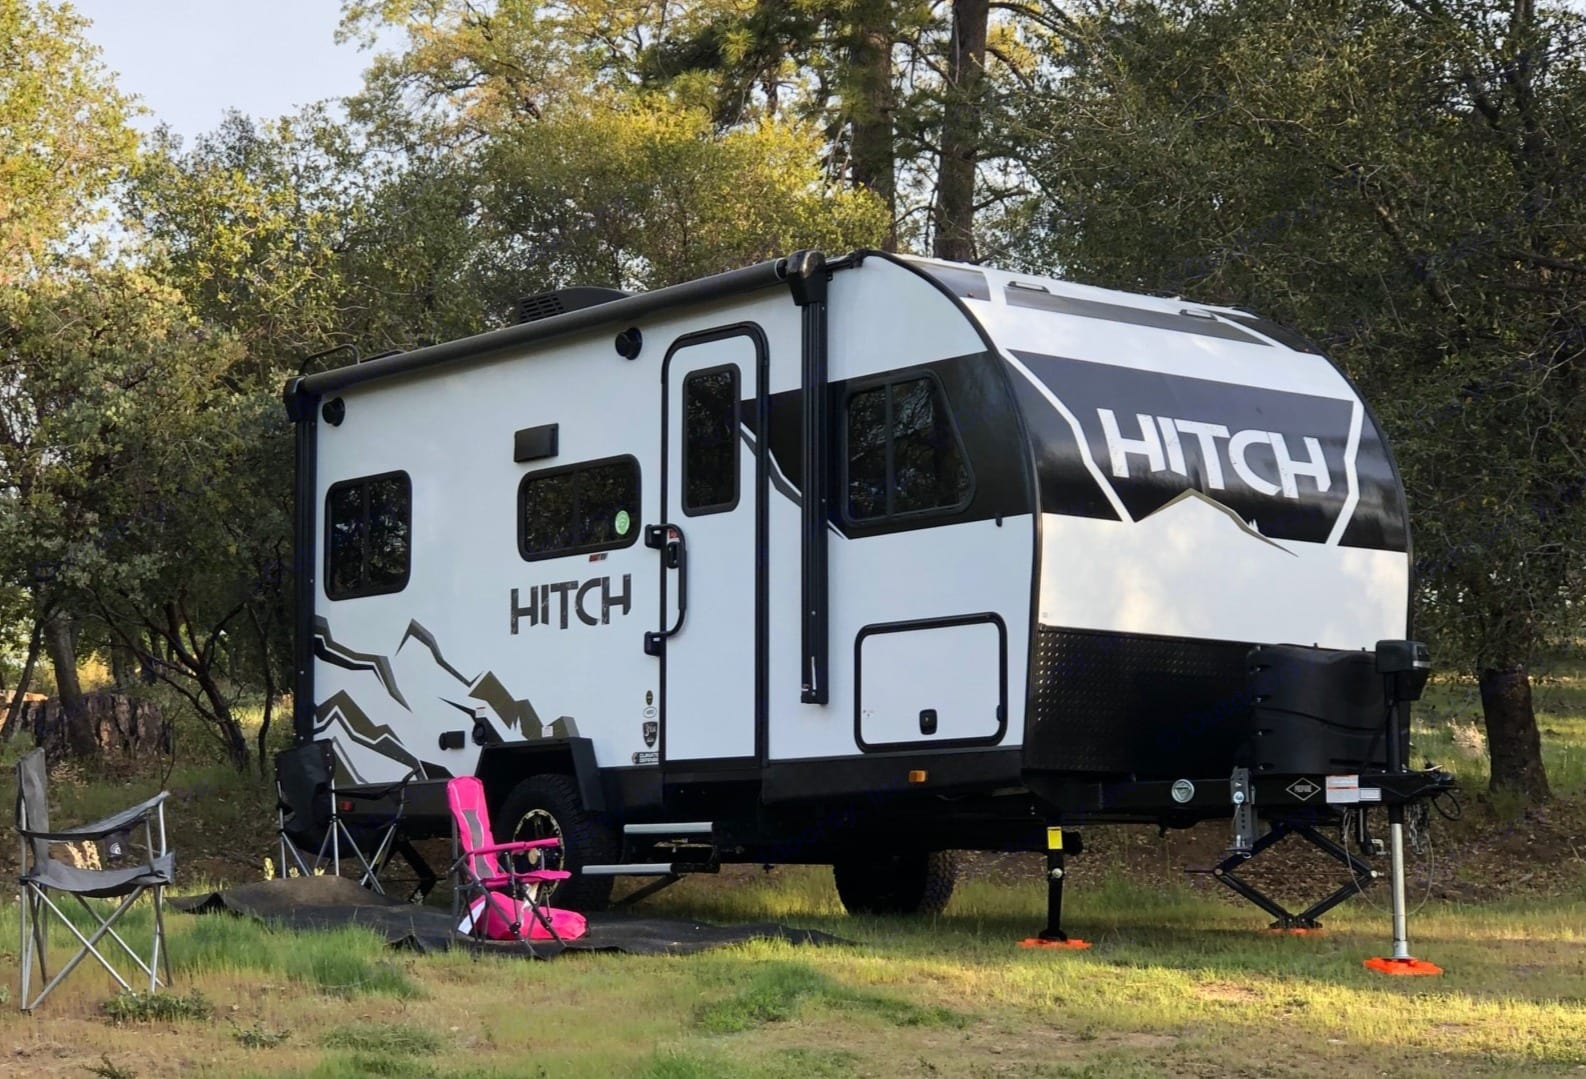 Trailer is 16 ft (21 ft with hitch) - making for easy towing and parking with most SUVs (3580 lbs dry weight or 4,884 lbs if fully loaded). Cruiser Rv Corp Hitch 16RD 2021